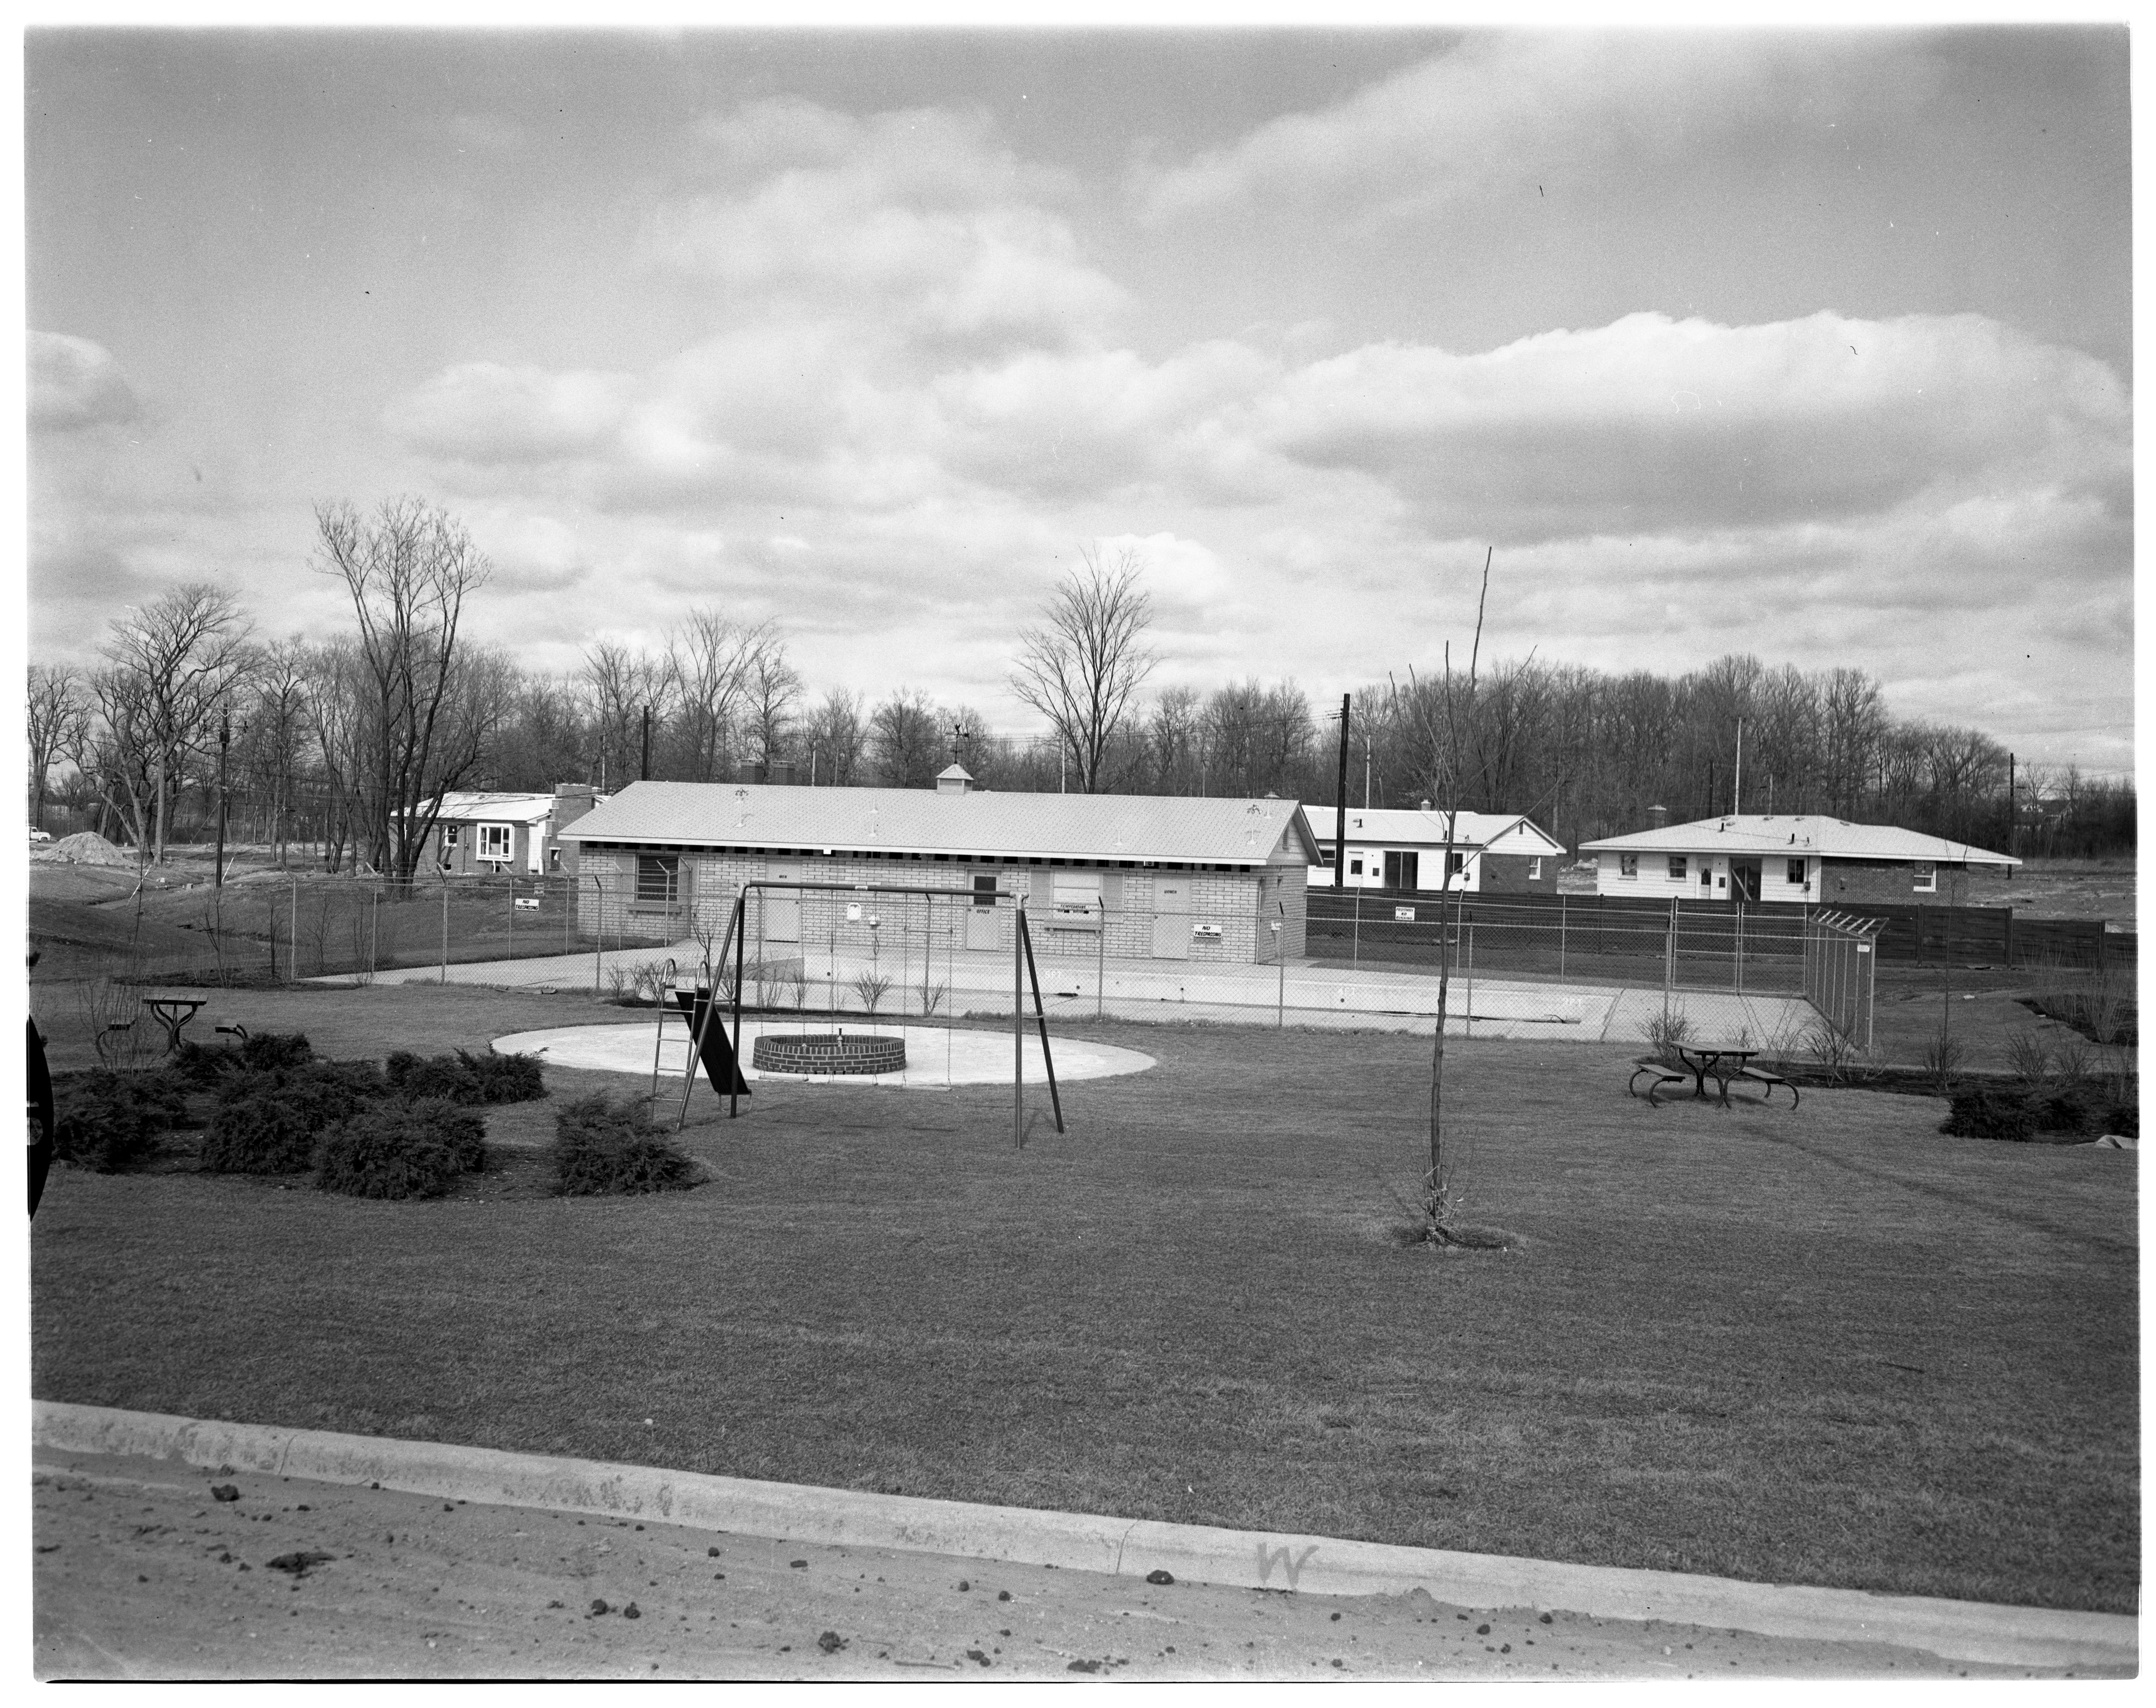 Forestbrooke Subdivision Playground and Swimming Pool, April 1961 image